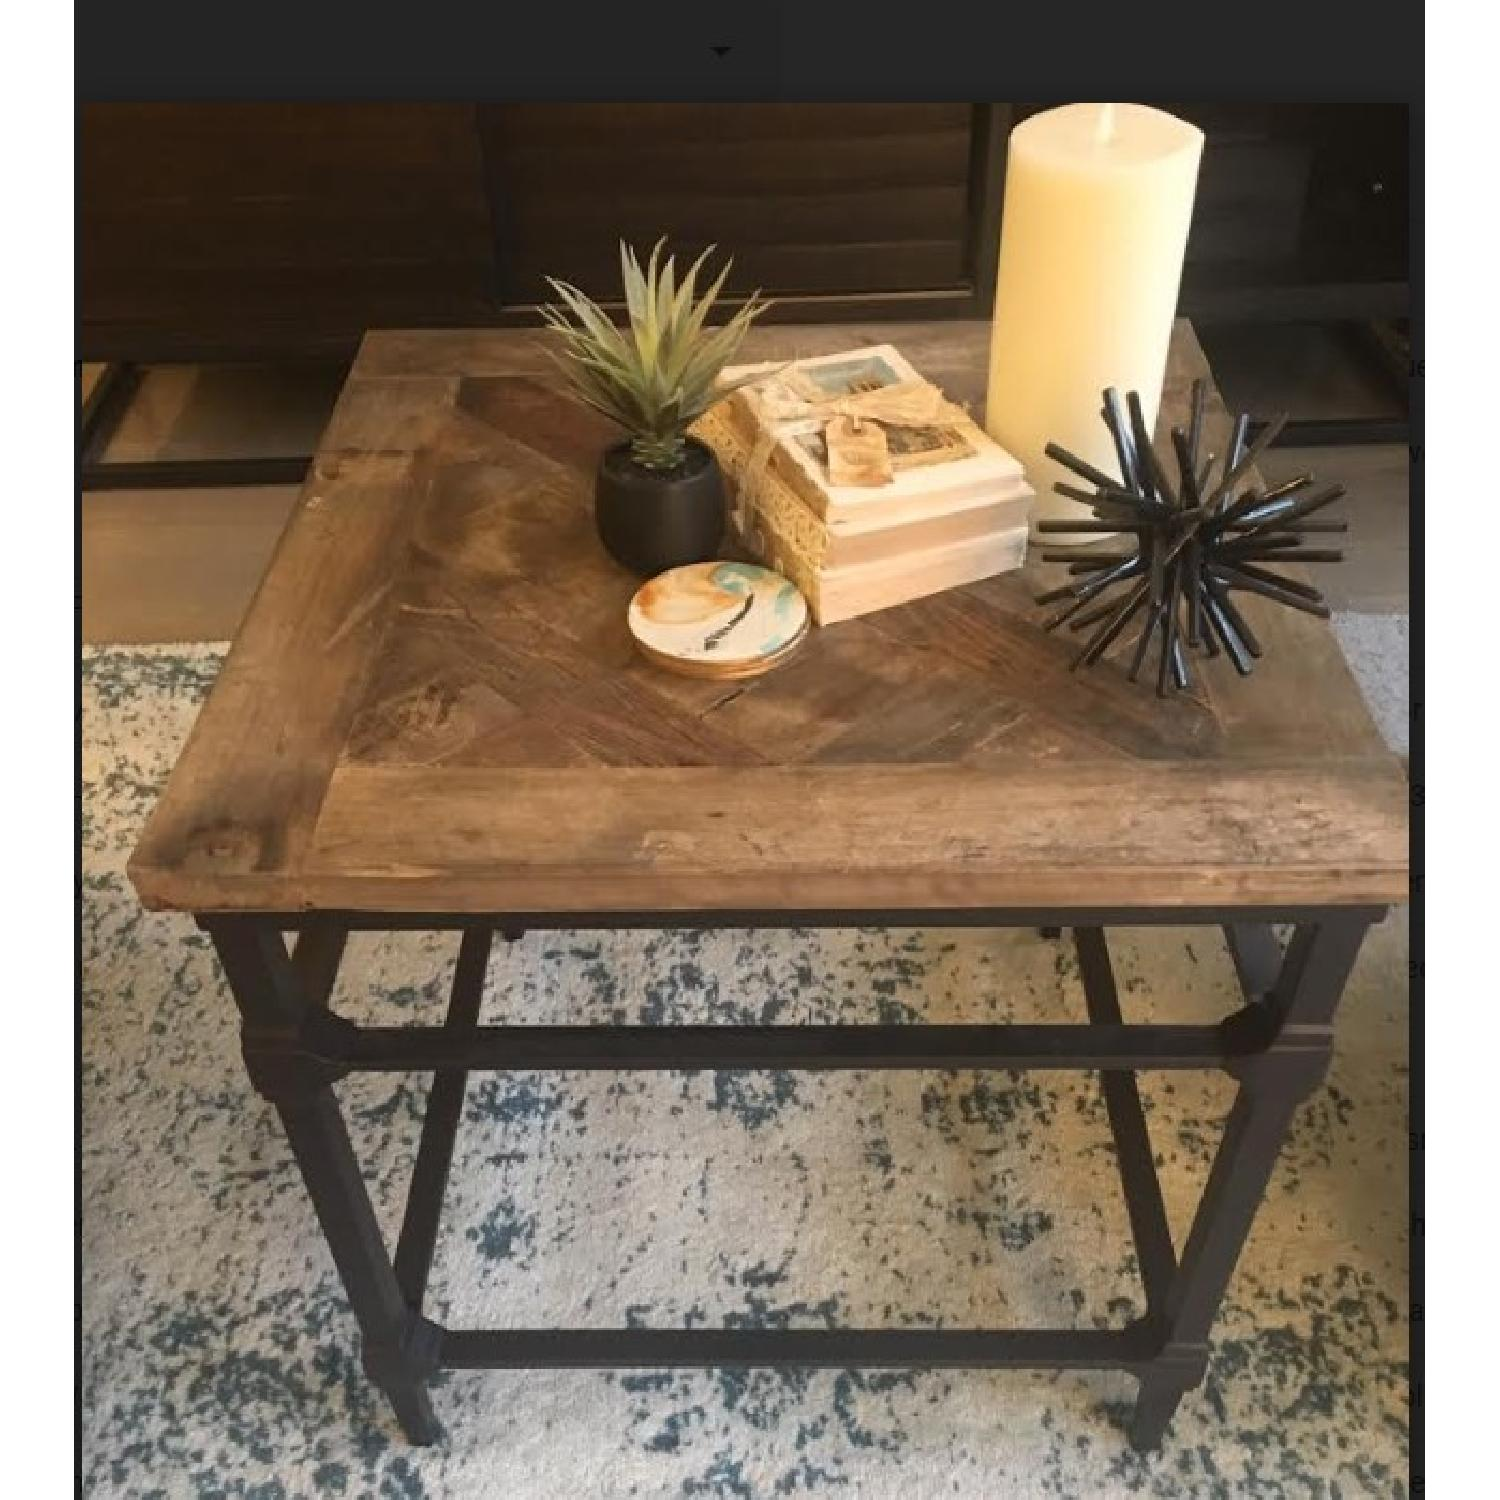 Pottery Barn Parquet Reclaimed Wood End Table-2